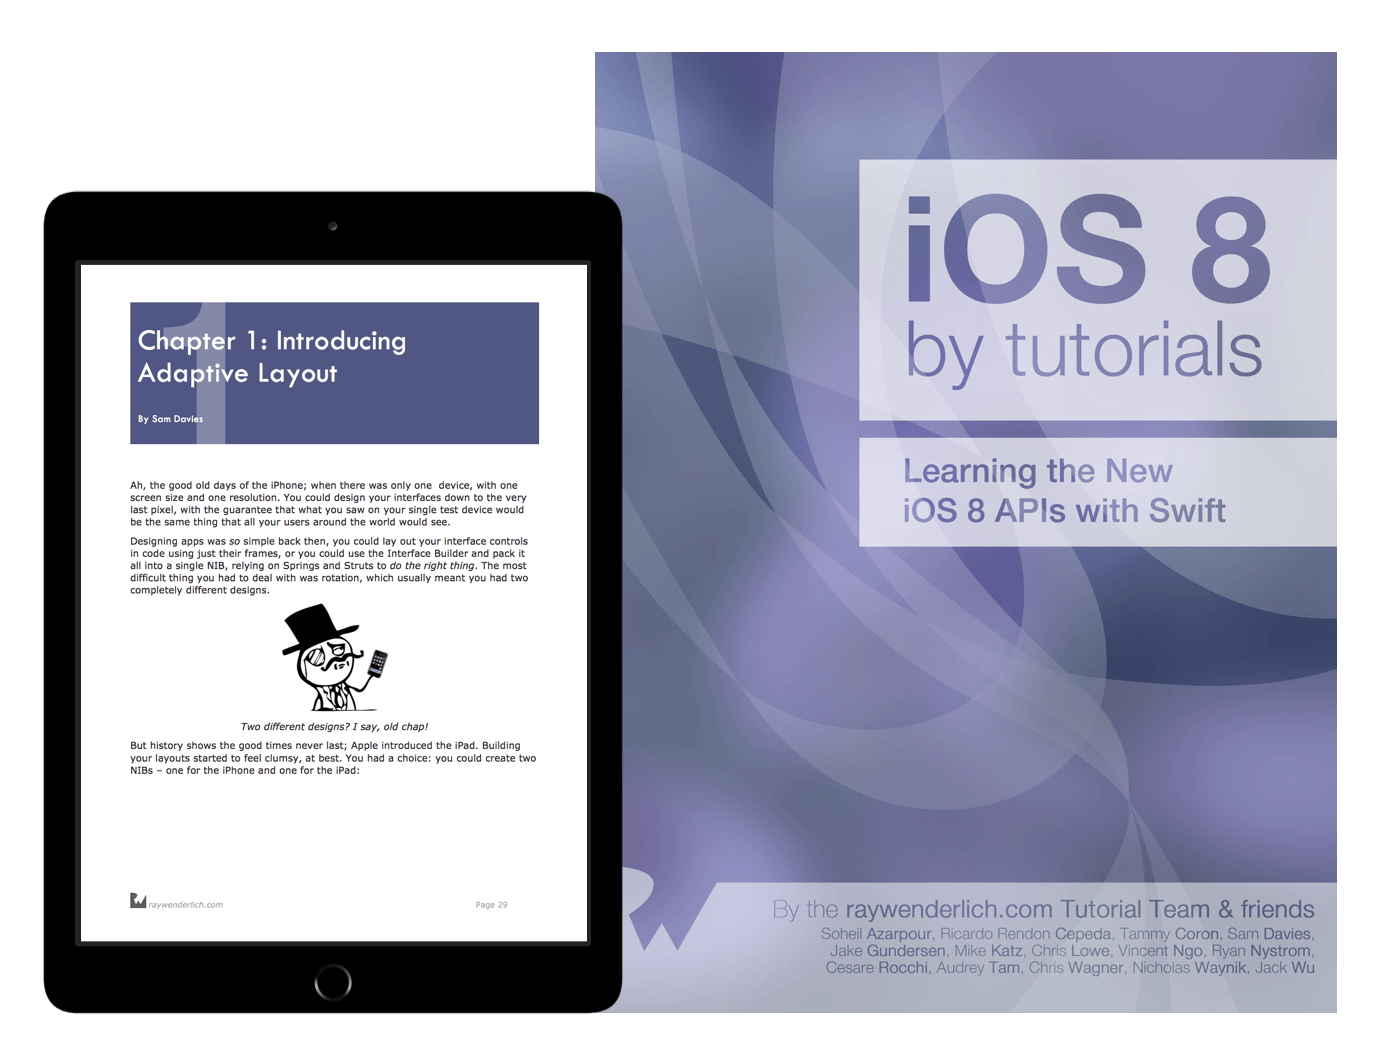 iOS 8 by Tutorials book cover